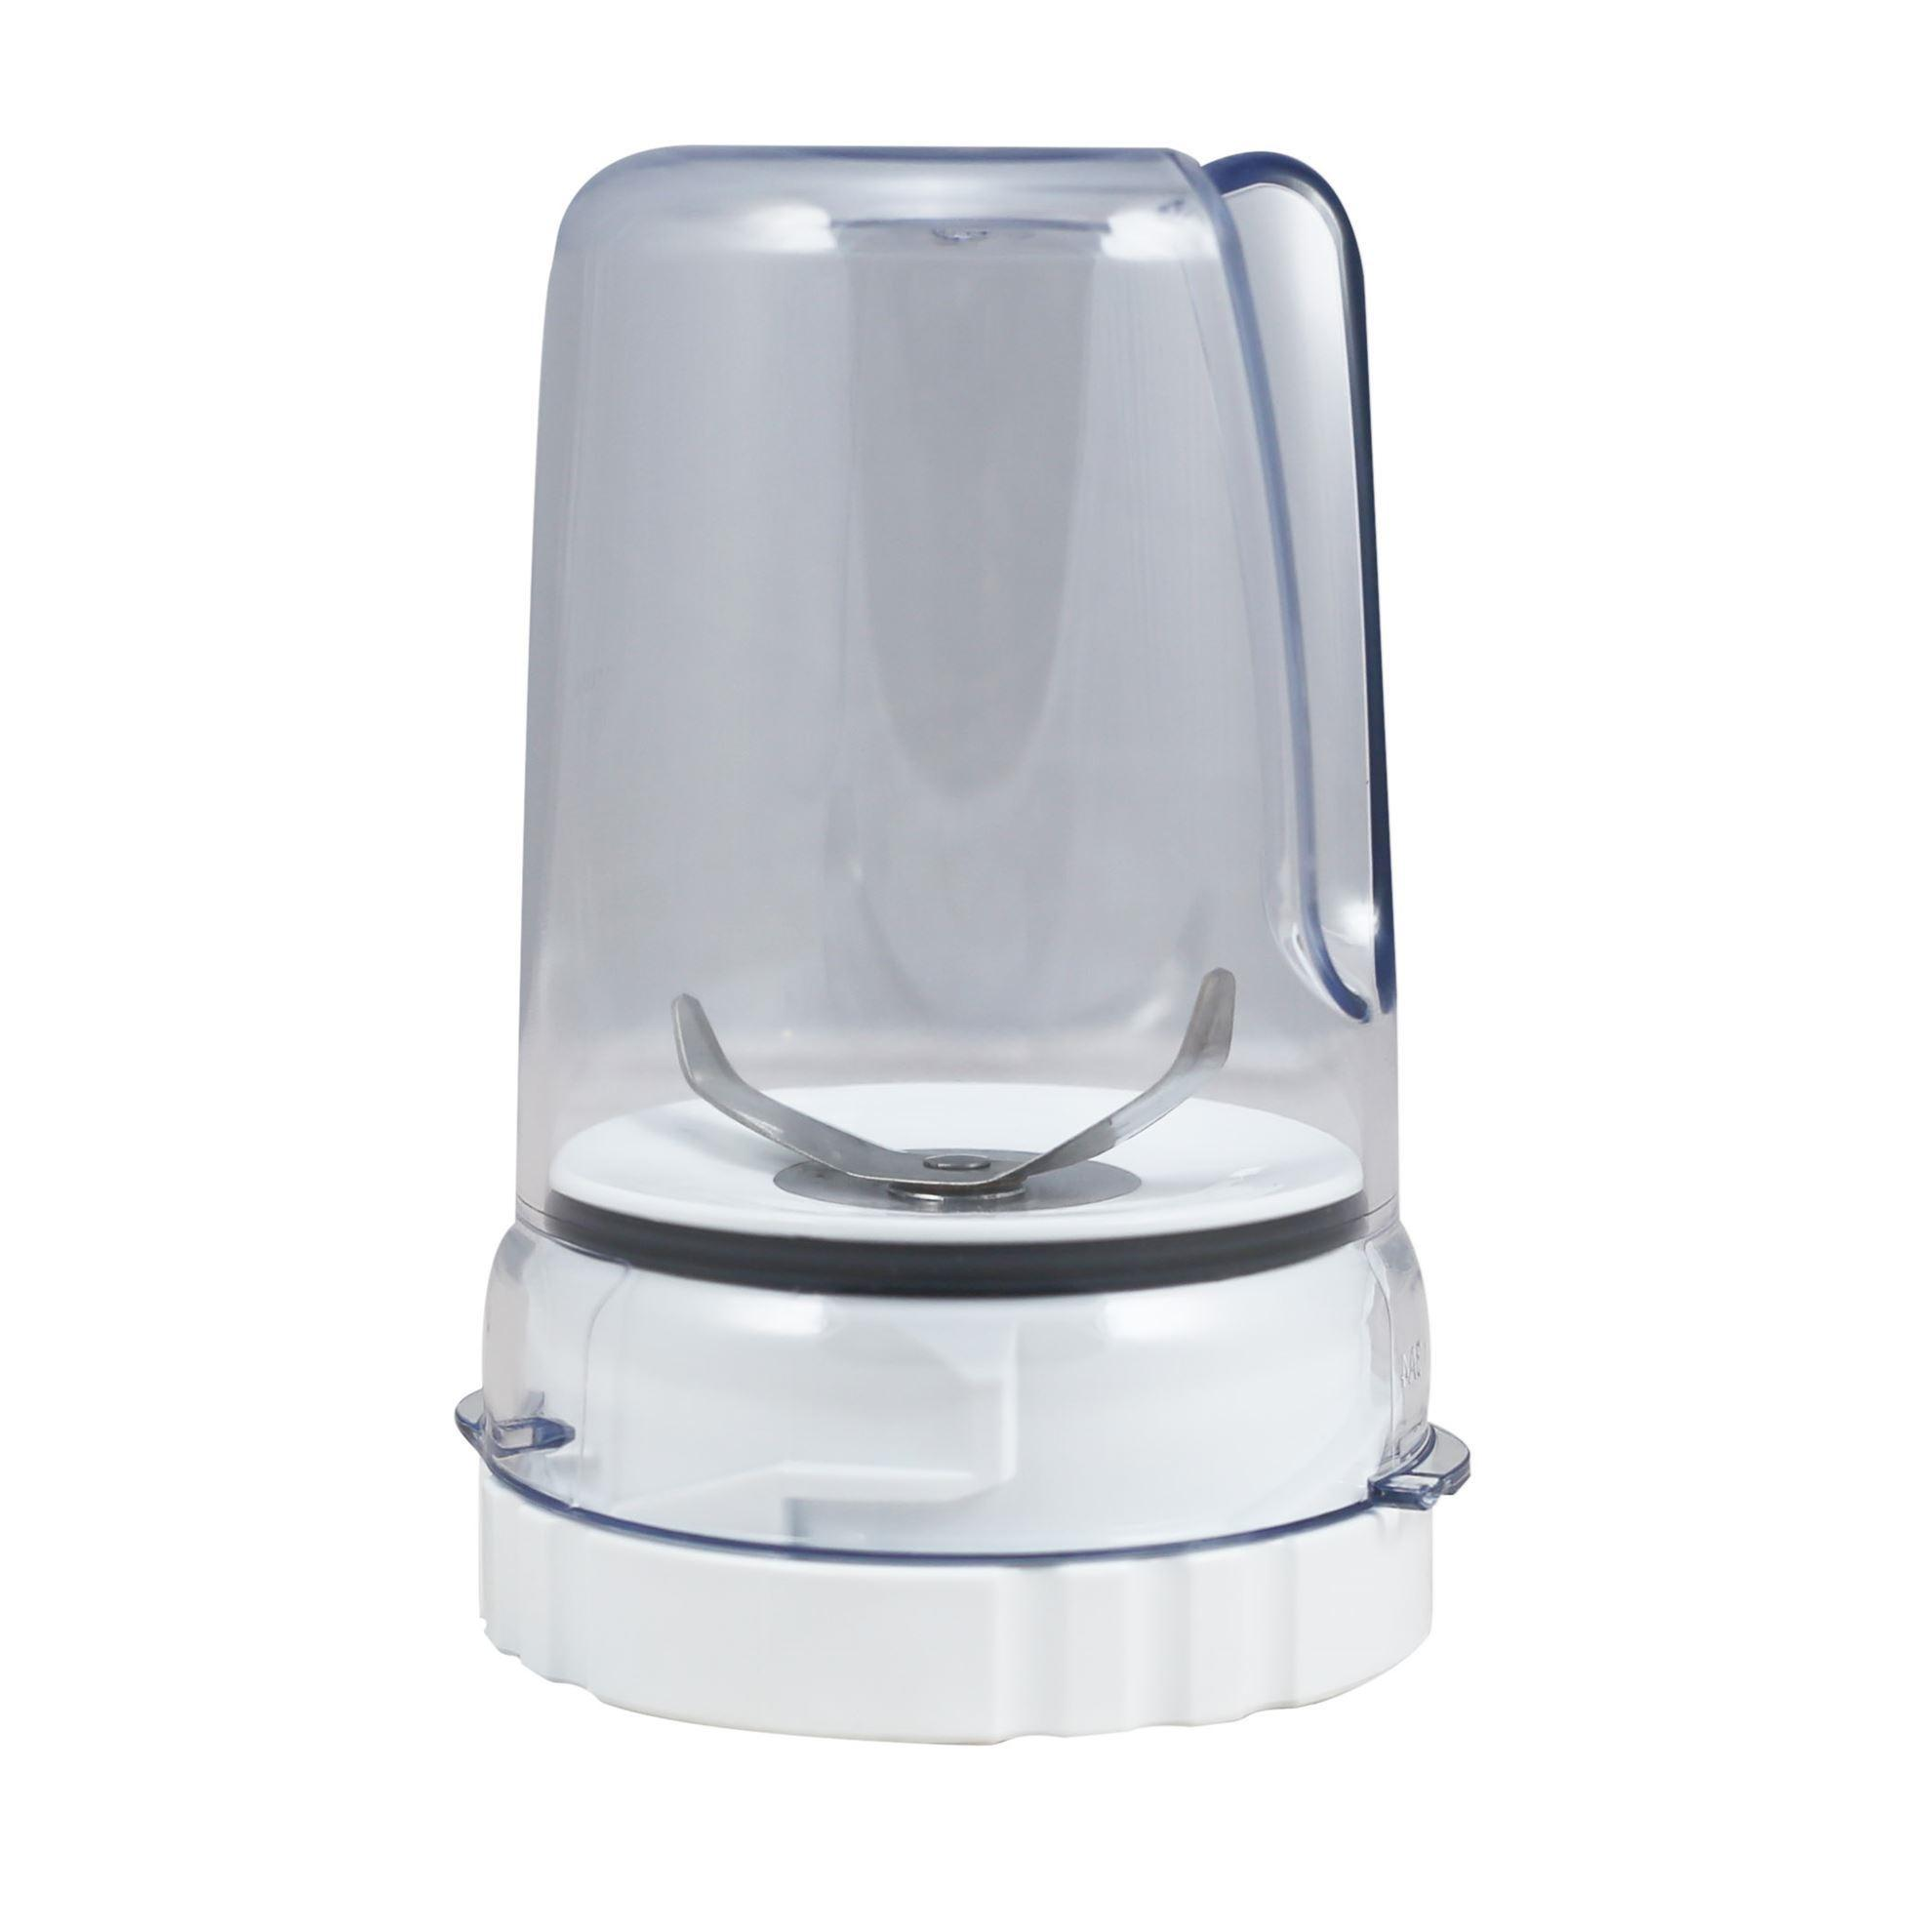 Philips Dry Mill - Gelas Bumbu Kering Blender HR 2115 - 2116 - 2061 dan 2071 - Komplit 1 Set